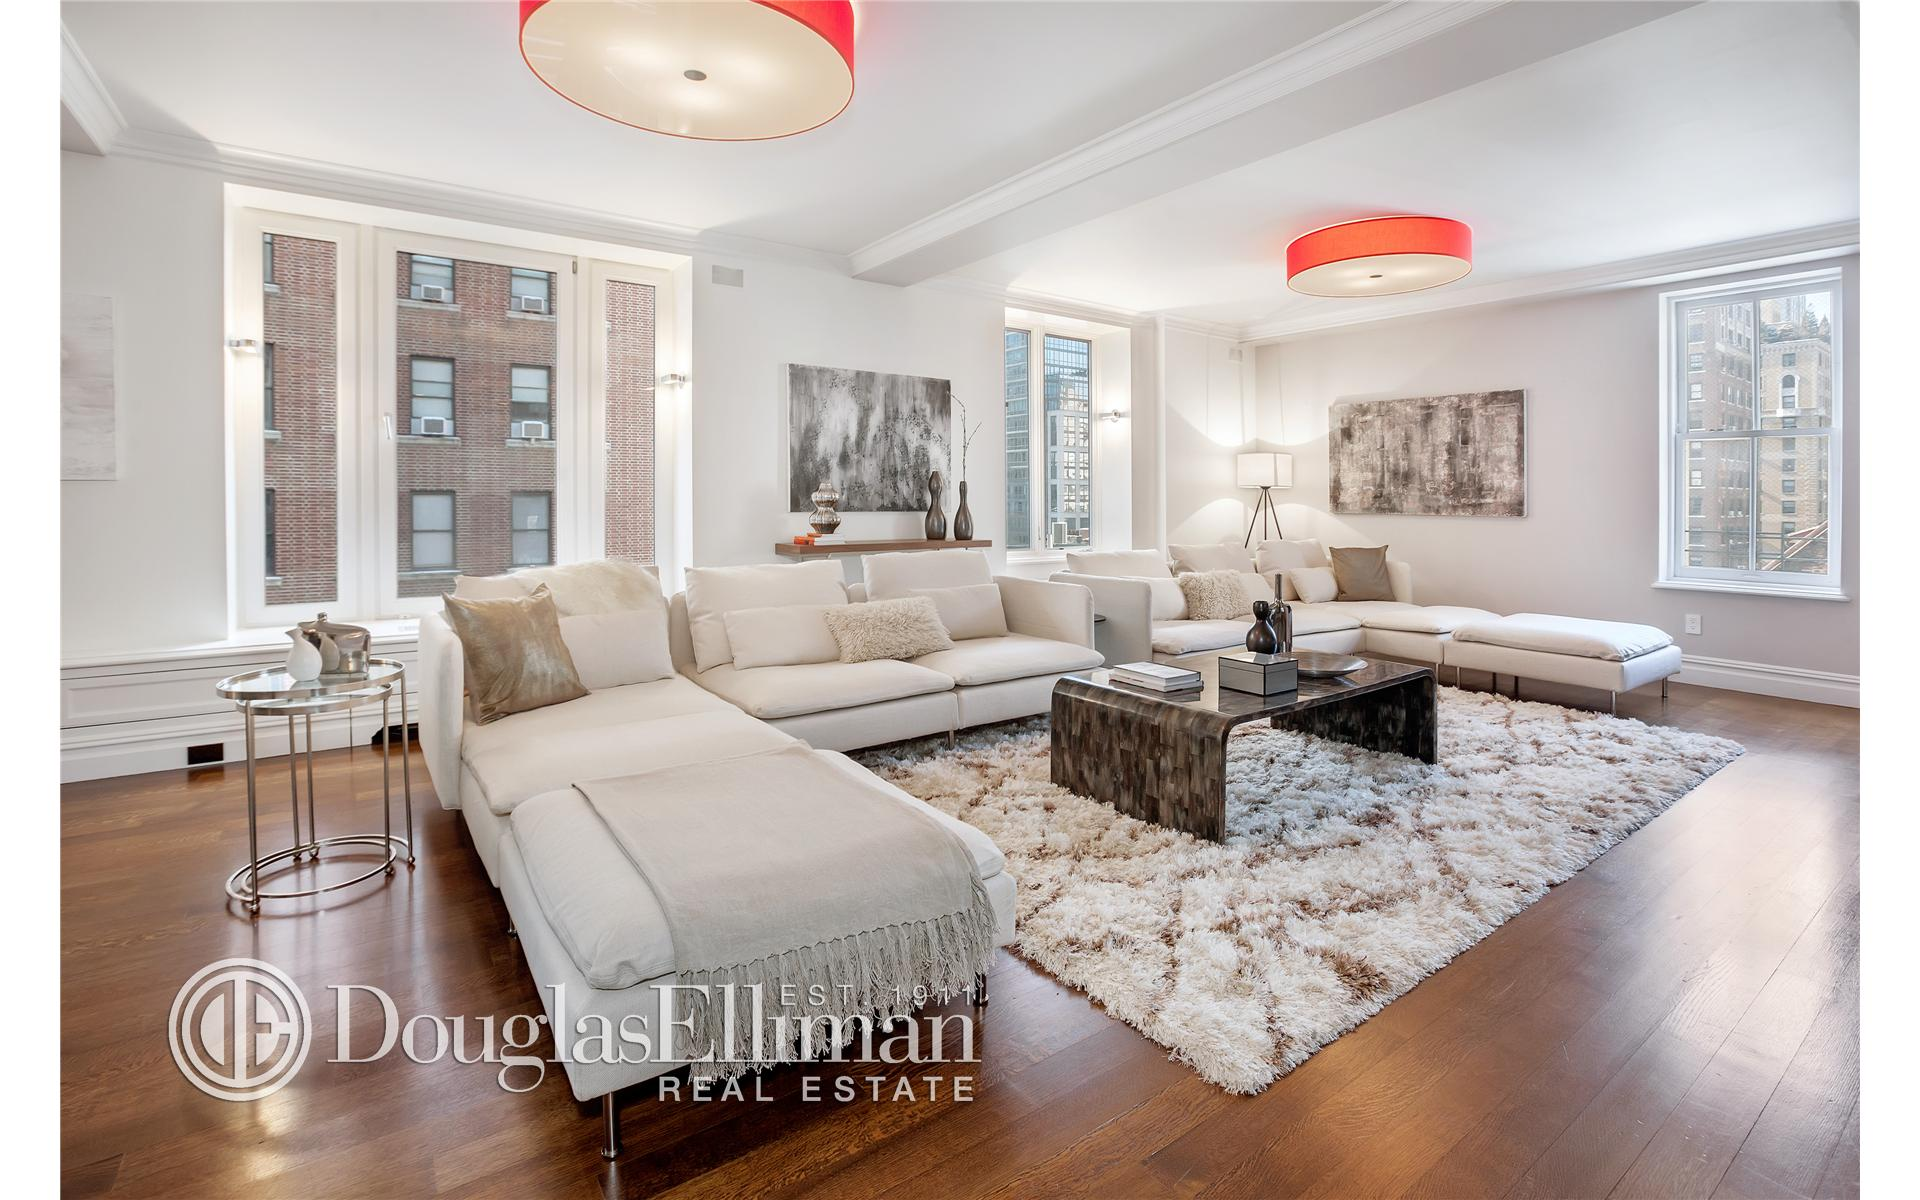 Condominium for Sale at The Lucania, The Lucania, 235 West 71st Street New York, New York 10023 United States